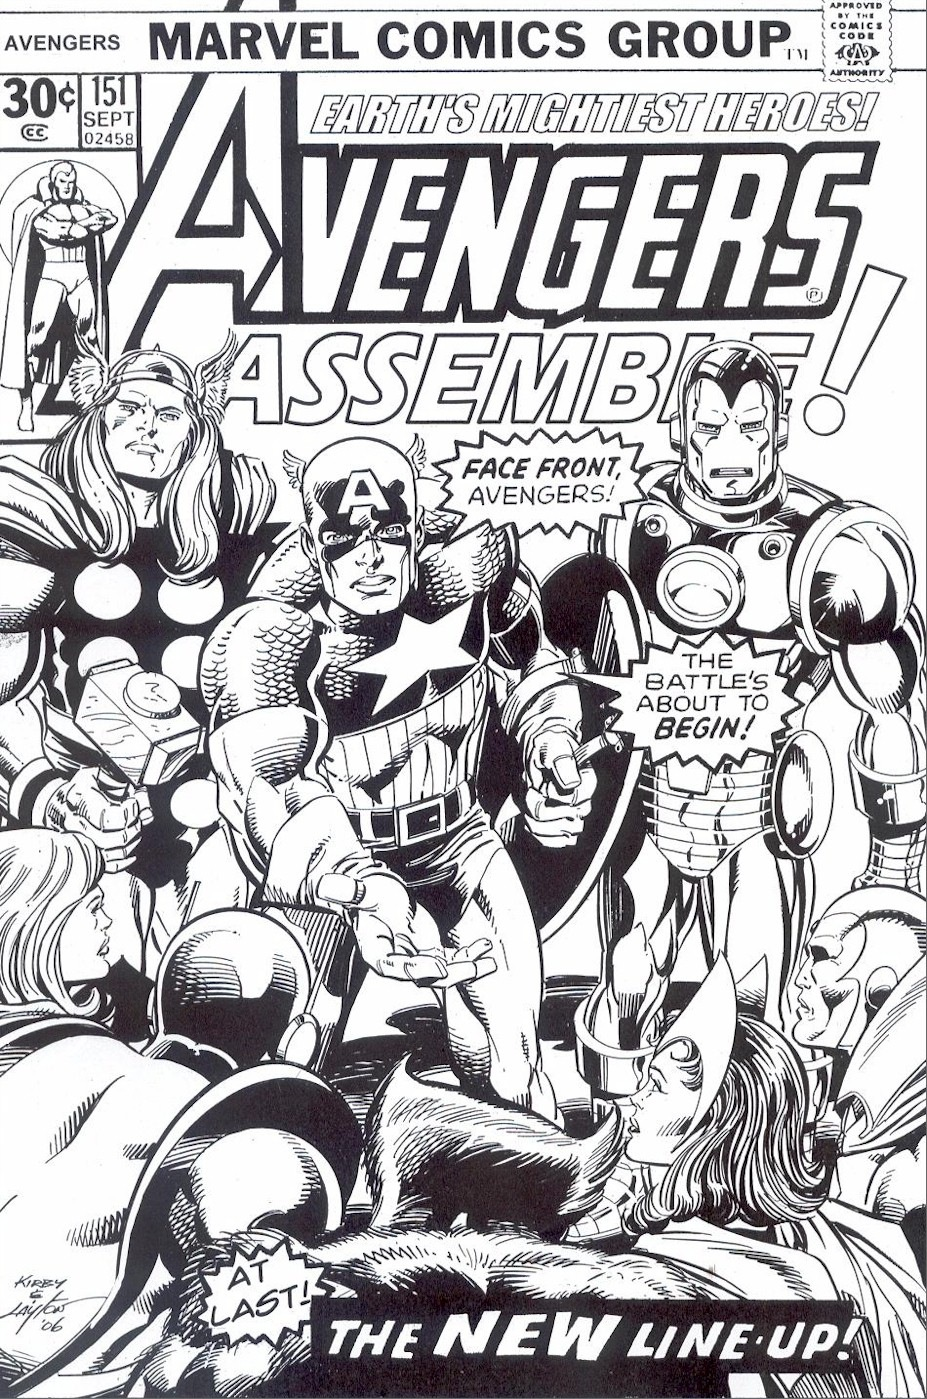 Quicksilver Coloring Pages - Free avengers comic coloring page